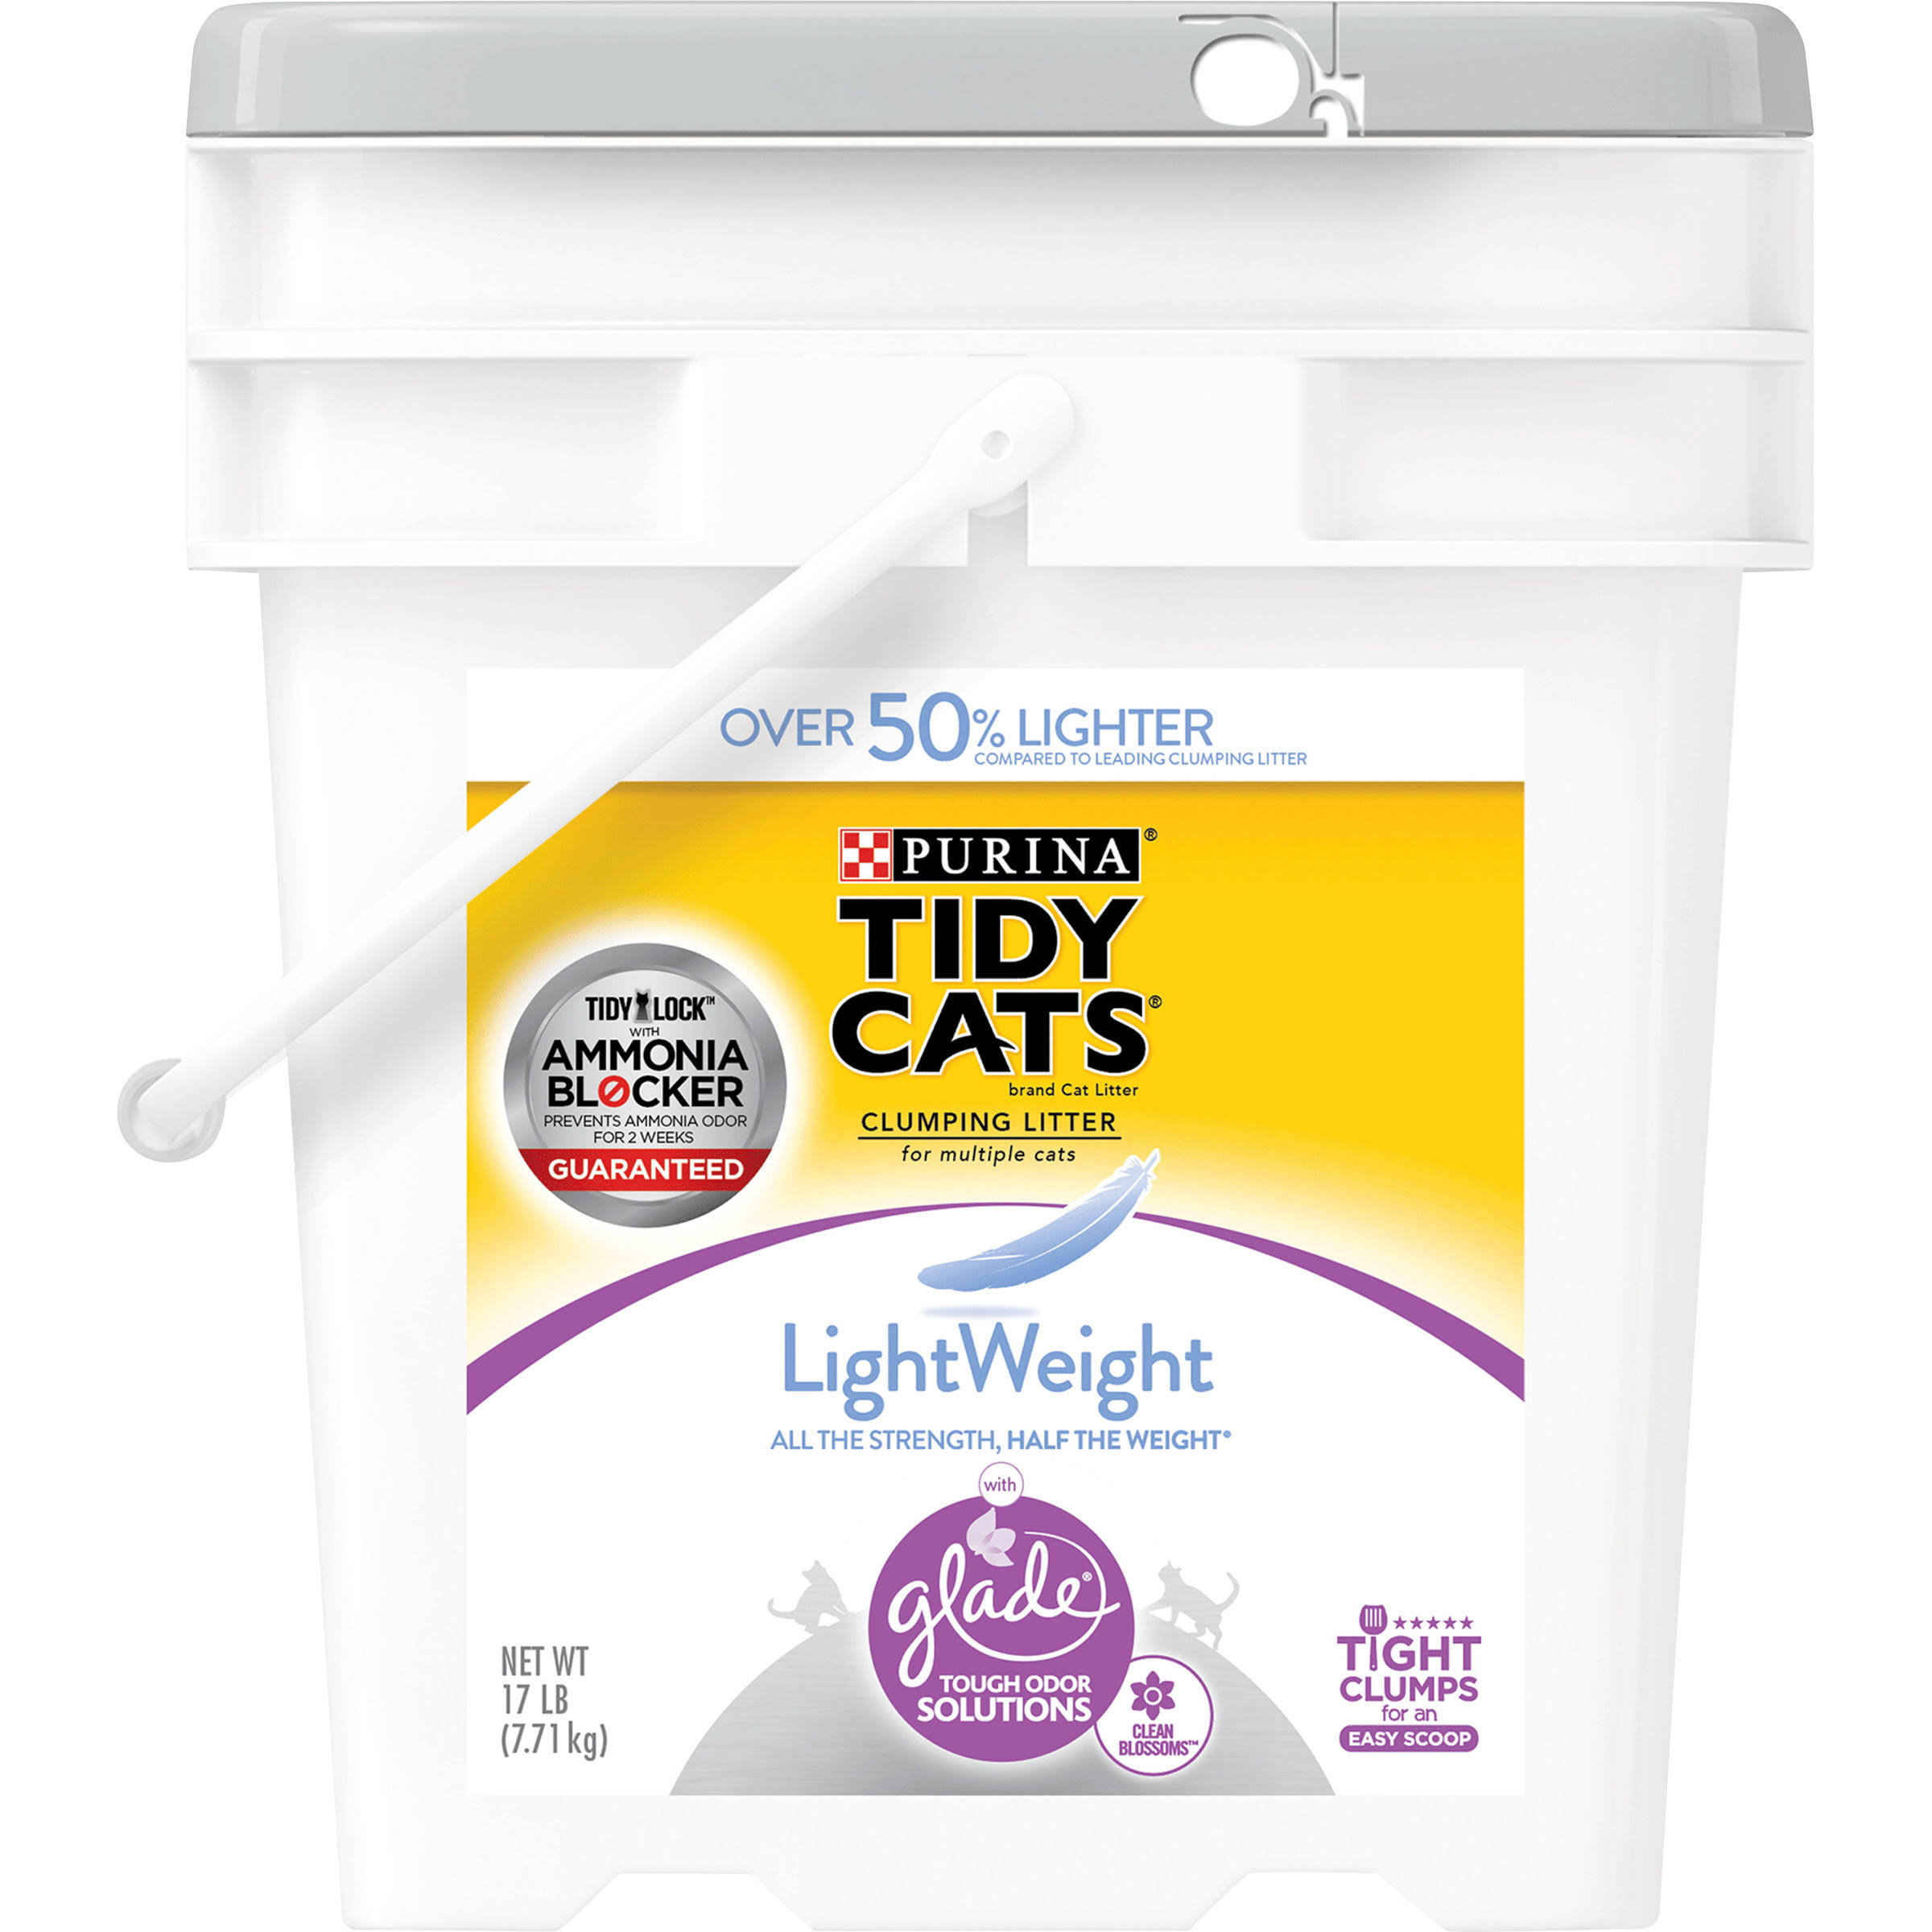 Purina Tidy Cats Lightweight Clean Blossoms Clumping Cat Litter - with Glade Tough Odor Solutions, 17lbs